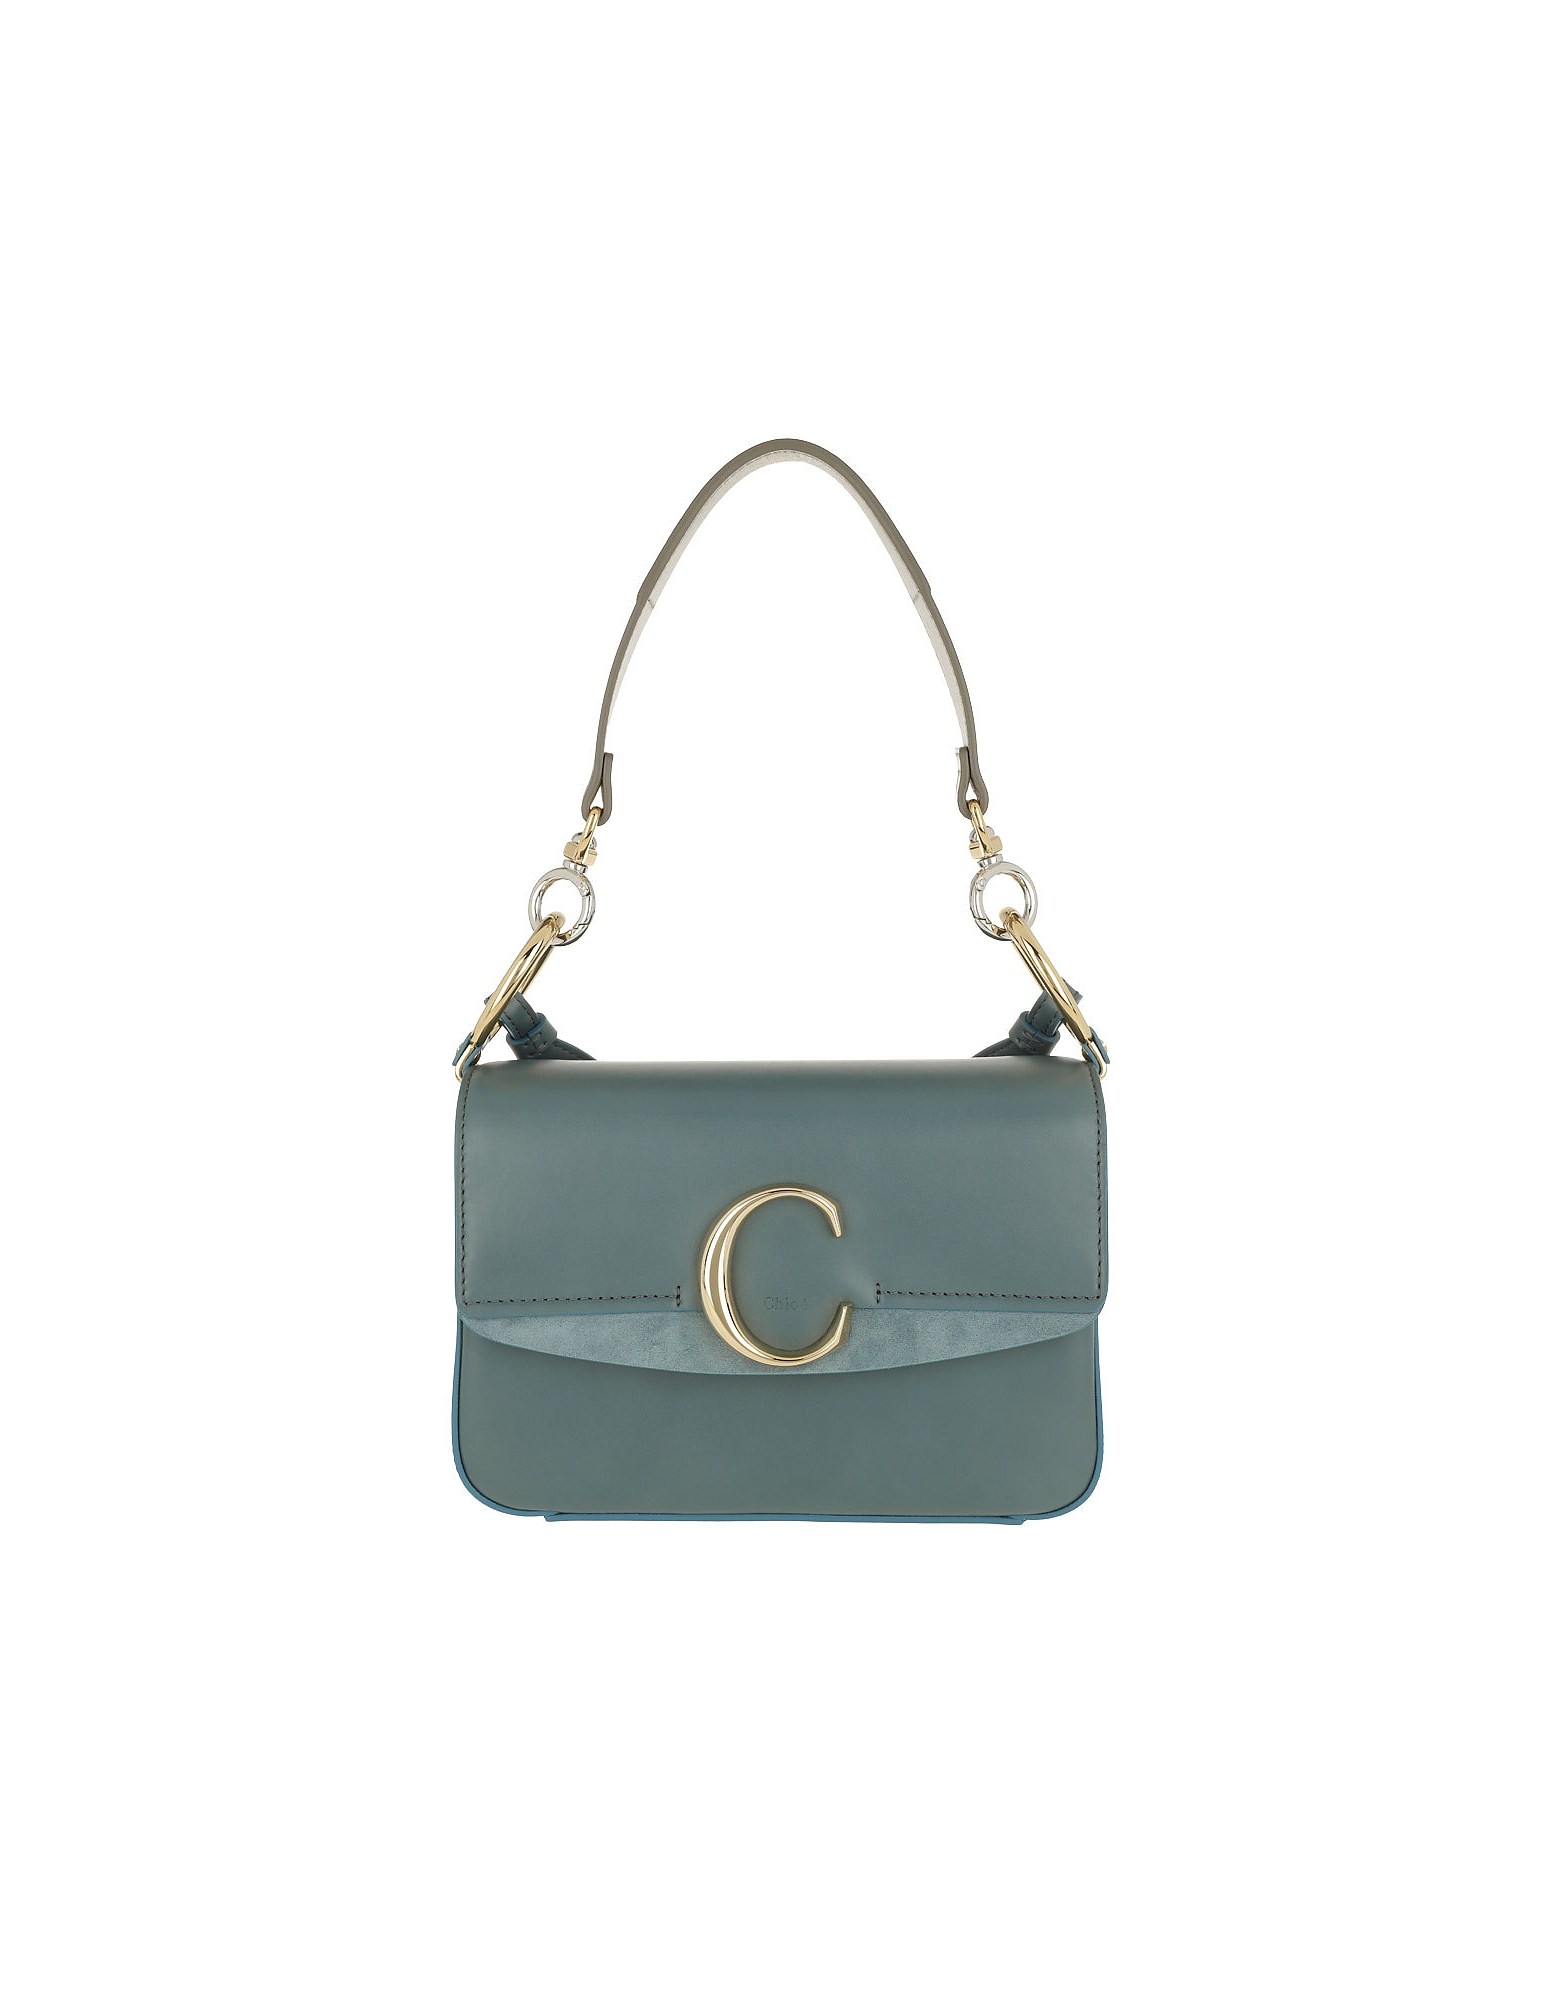 Chloe C Double Carry Small Shoulder Bag Leather Cloudy Blue